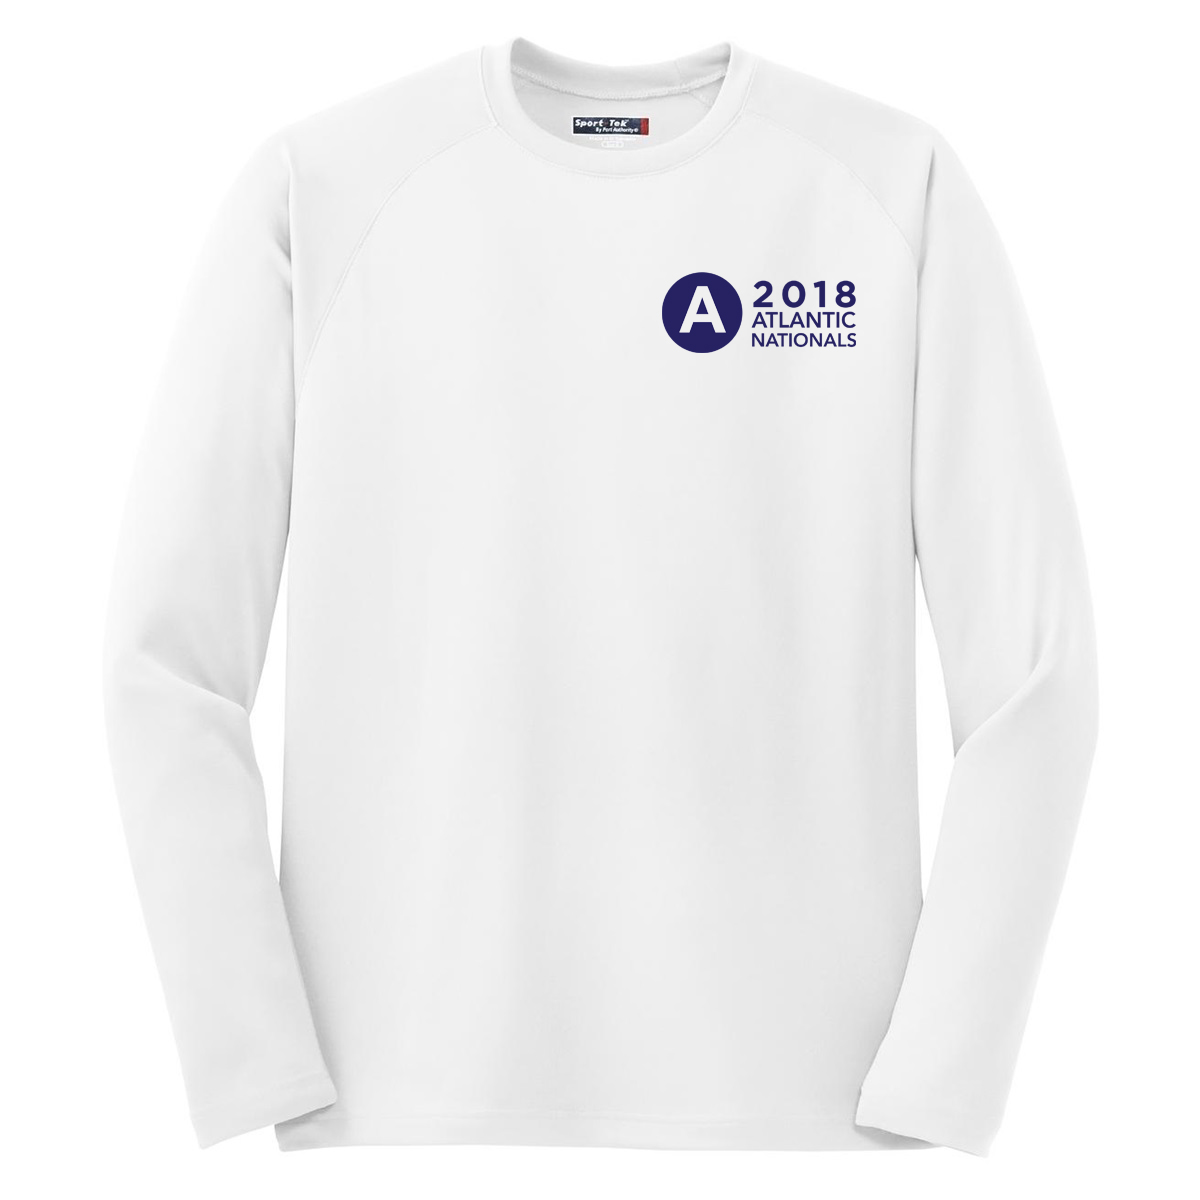 ATLANTIC NATIONALS - M'S L/S TECH TEE